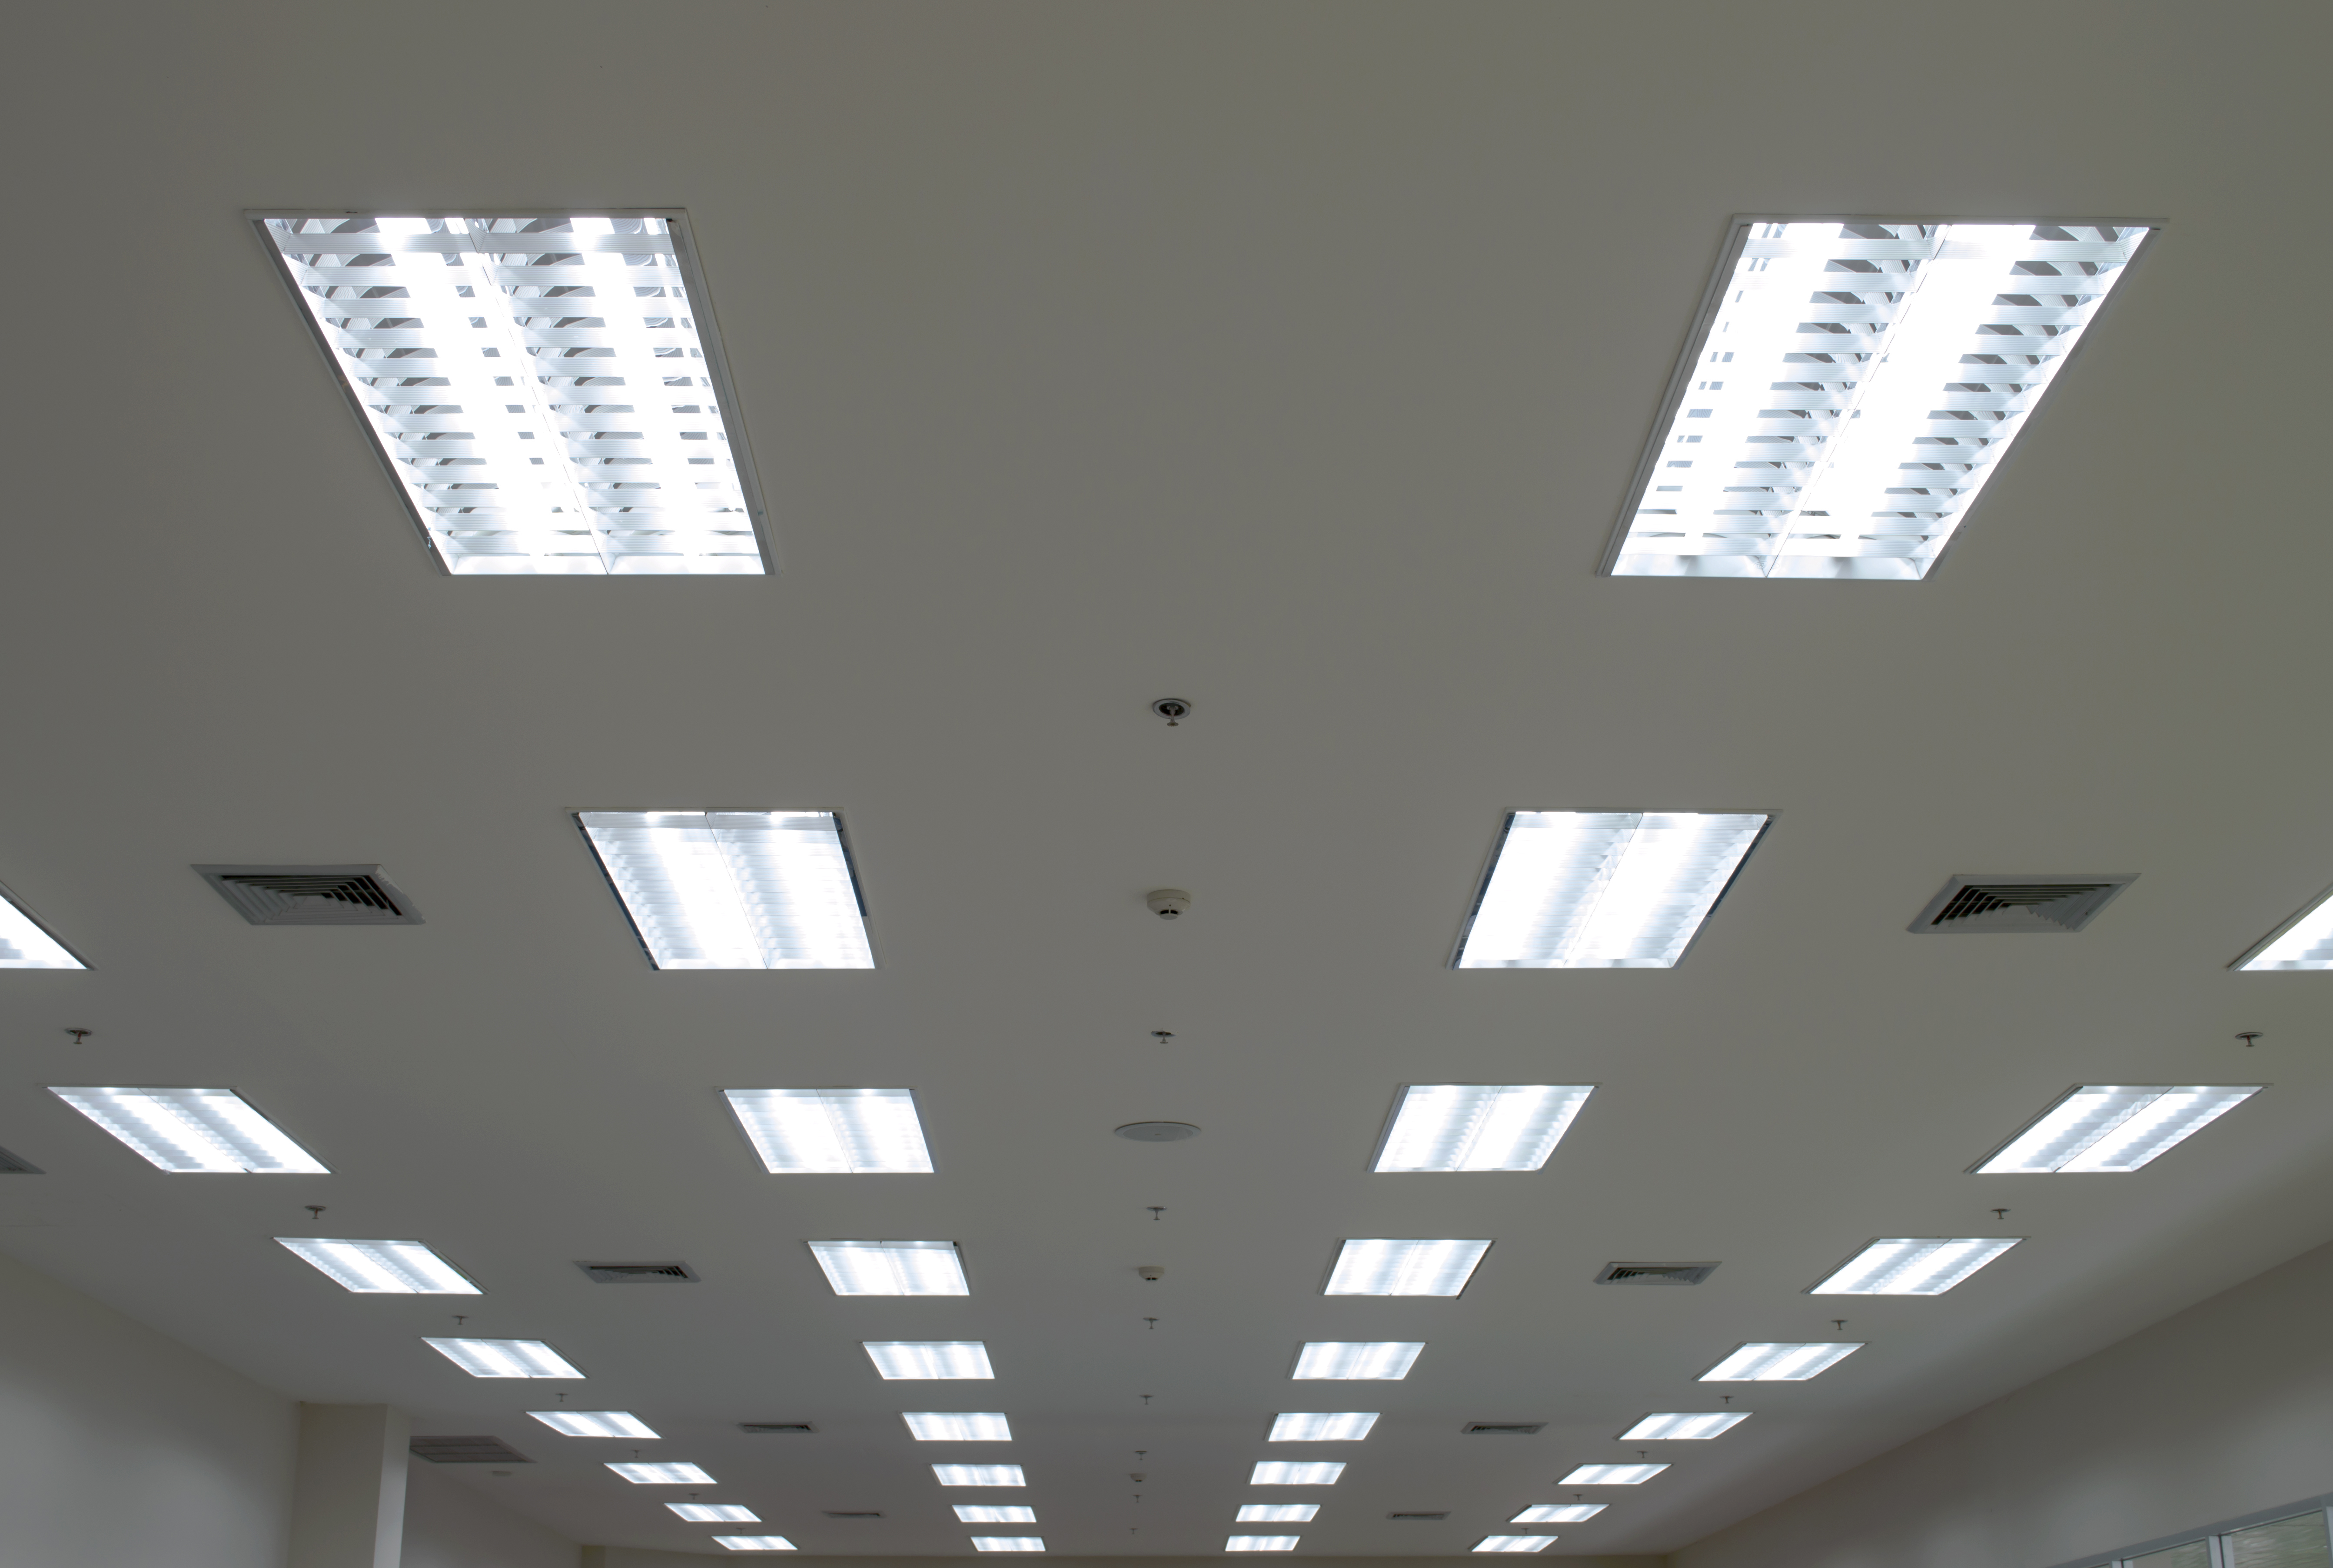 Fluorescent Lighting In School Could Be Harming Your Child U0026 39 S Health And Ability To Read